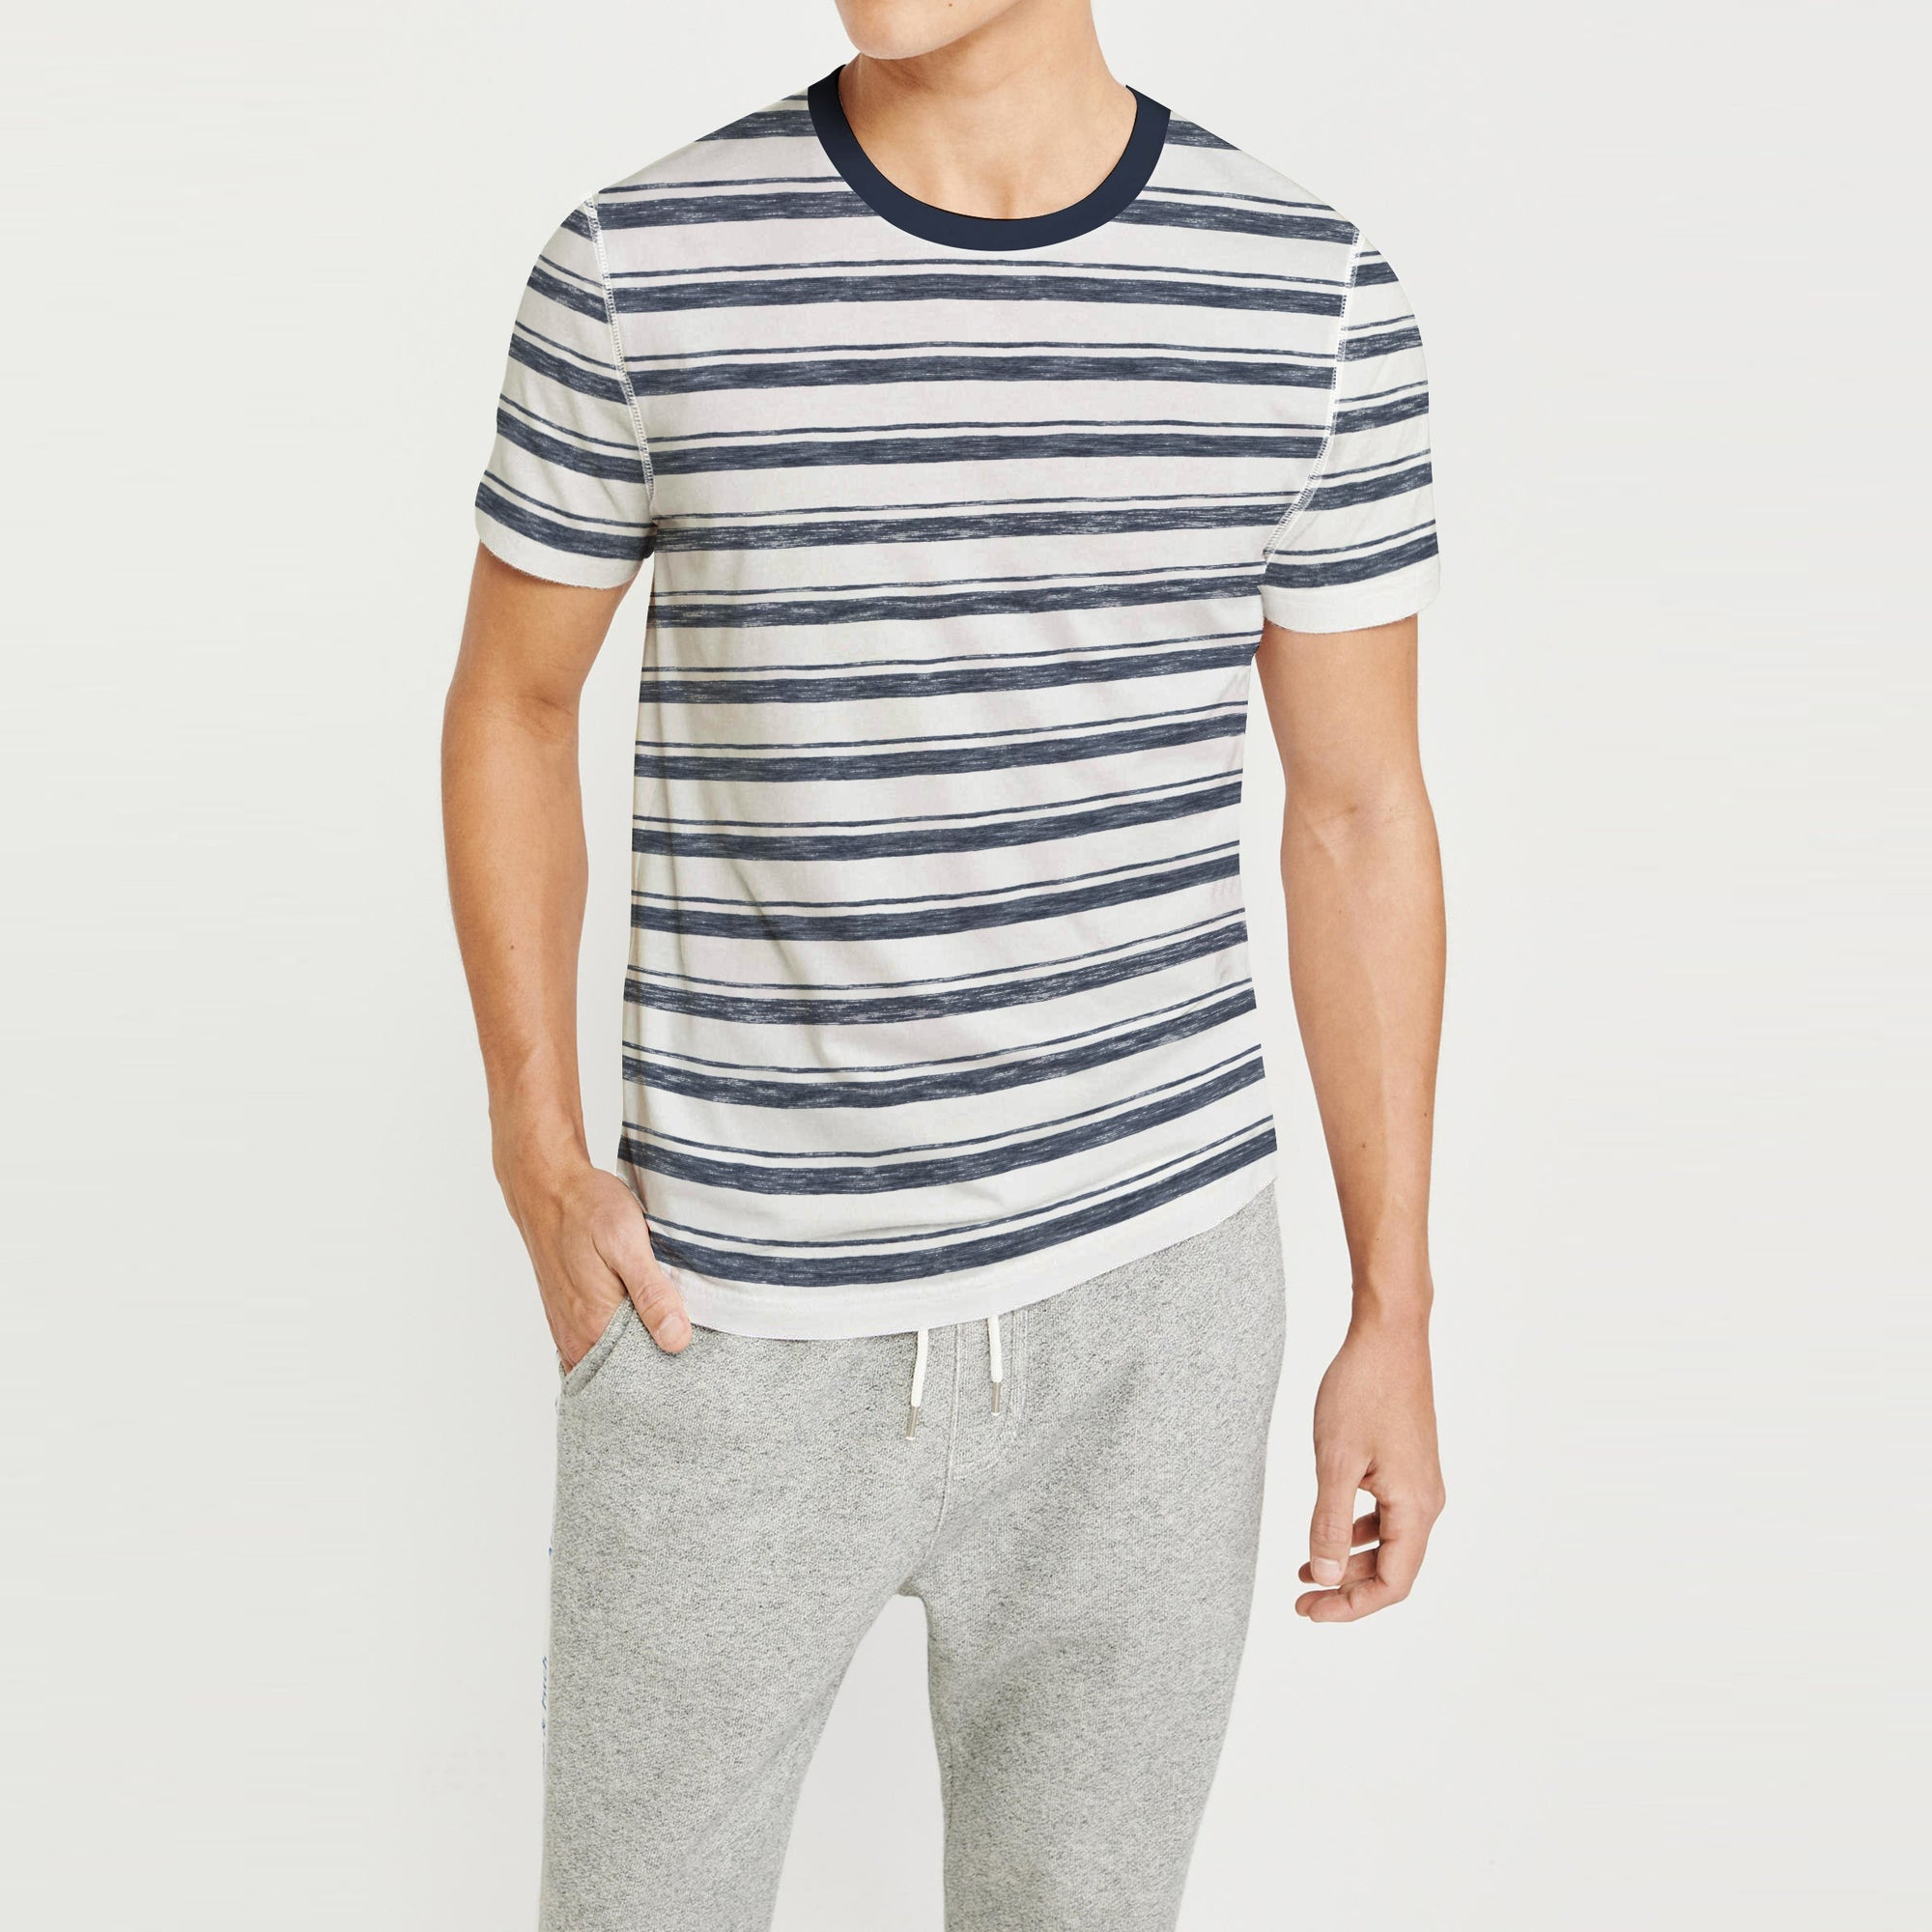 Fat Face Crew Neck Half Sleeve Tee Shirt For Men-Off White with Stripe-BE8113